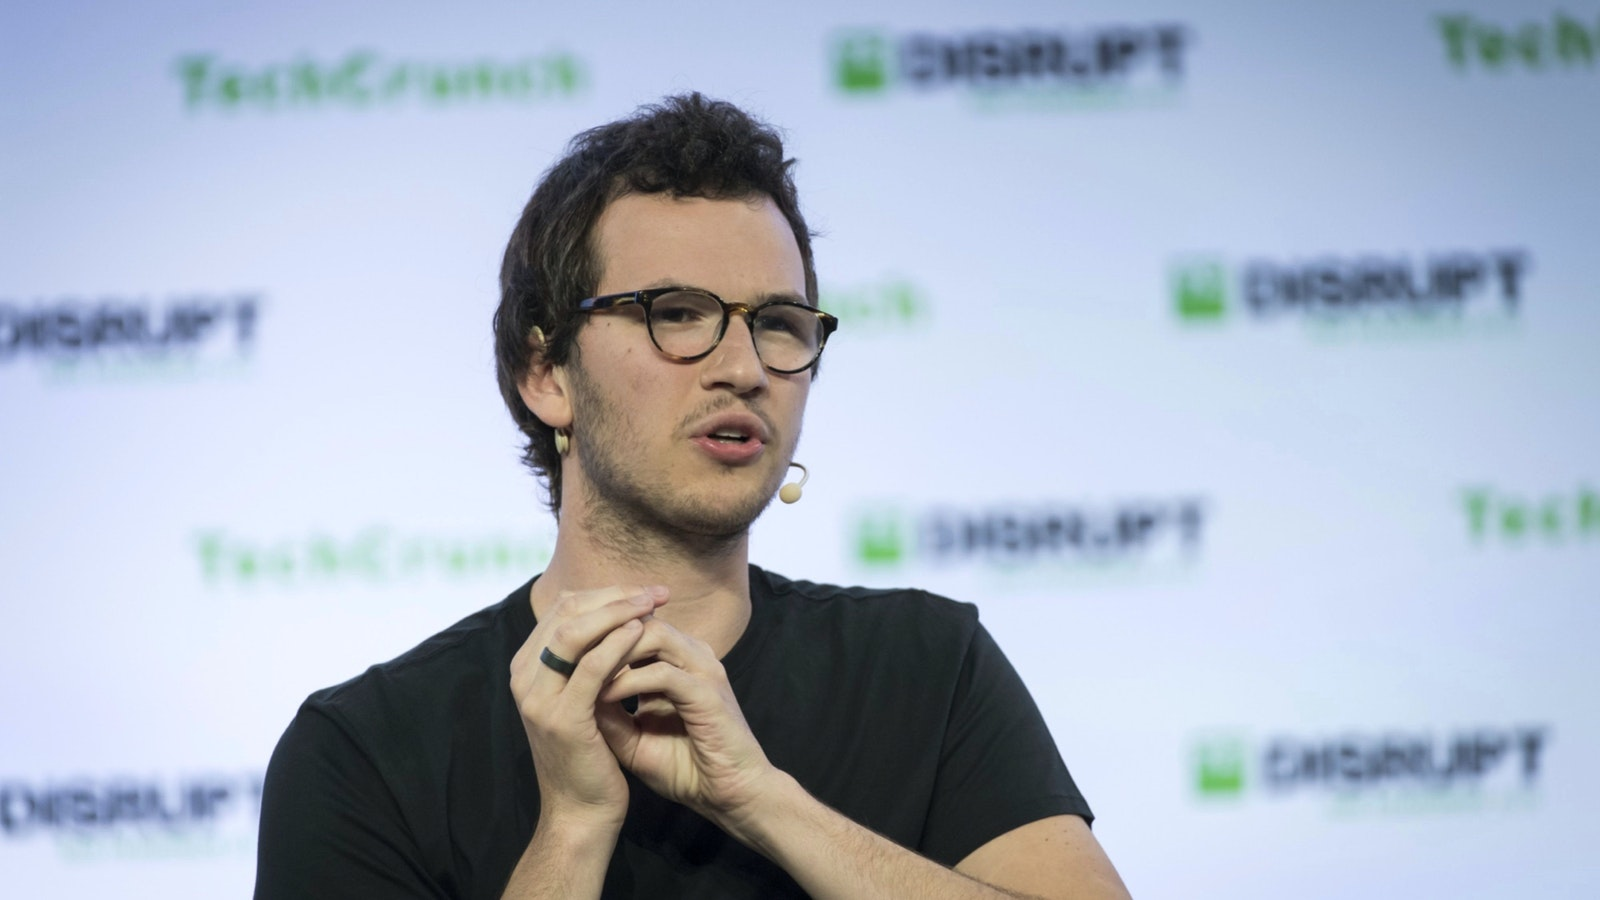 Henrique Dubugras, co-founder and chief executive office of Brex. Photo by Bloomberg